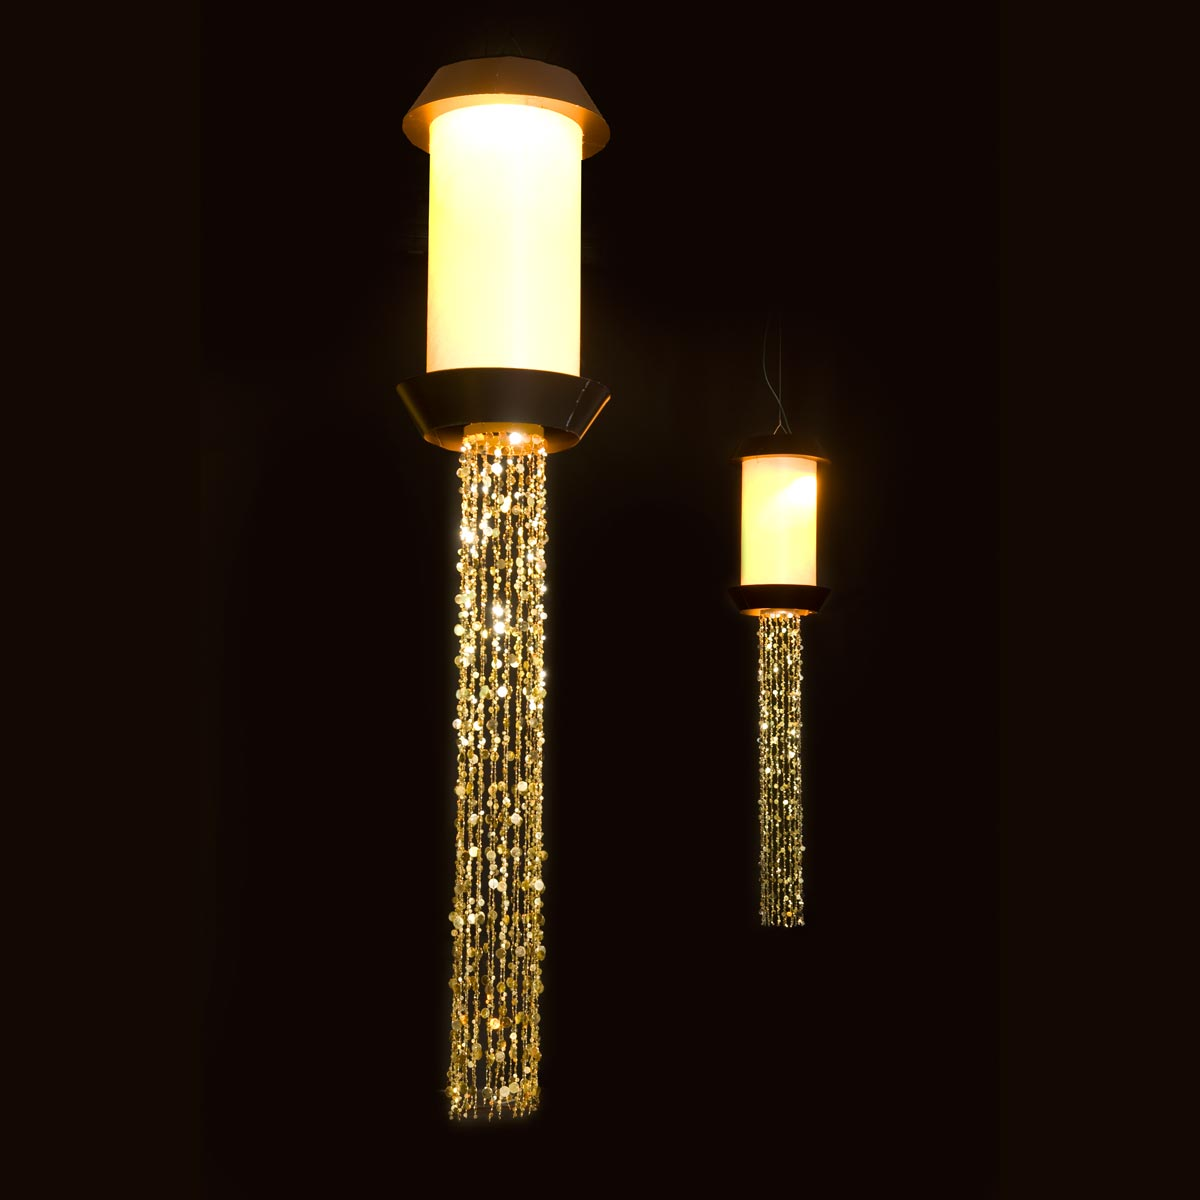 Gold Dust Rising Chandeliers Kit (set of 2)